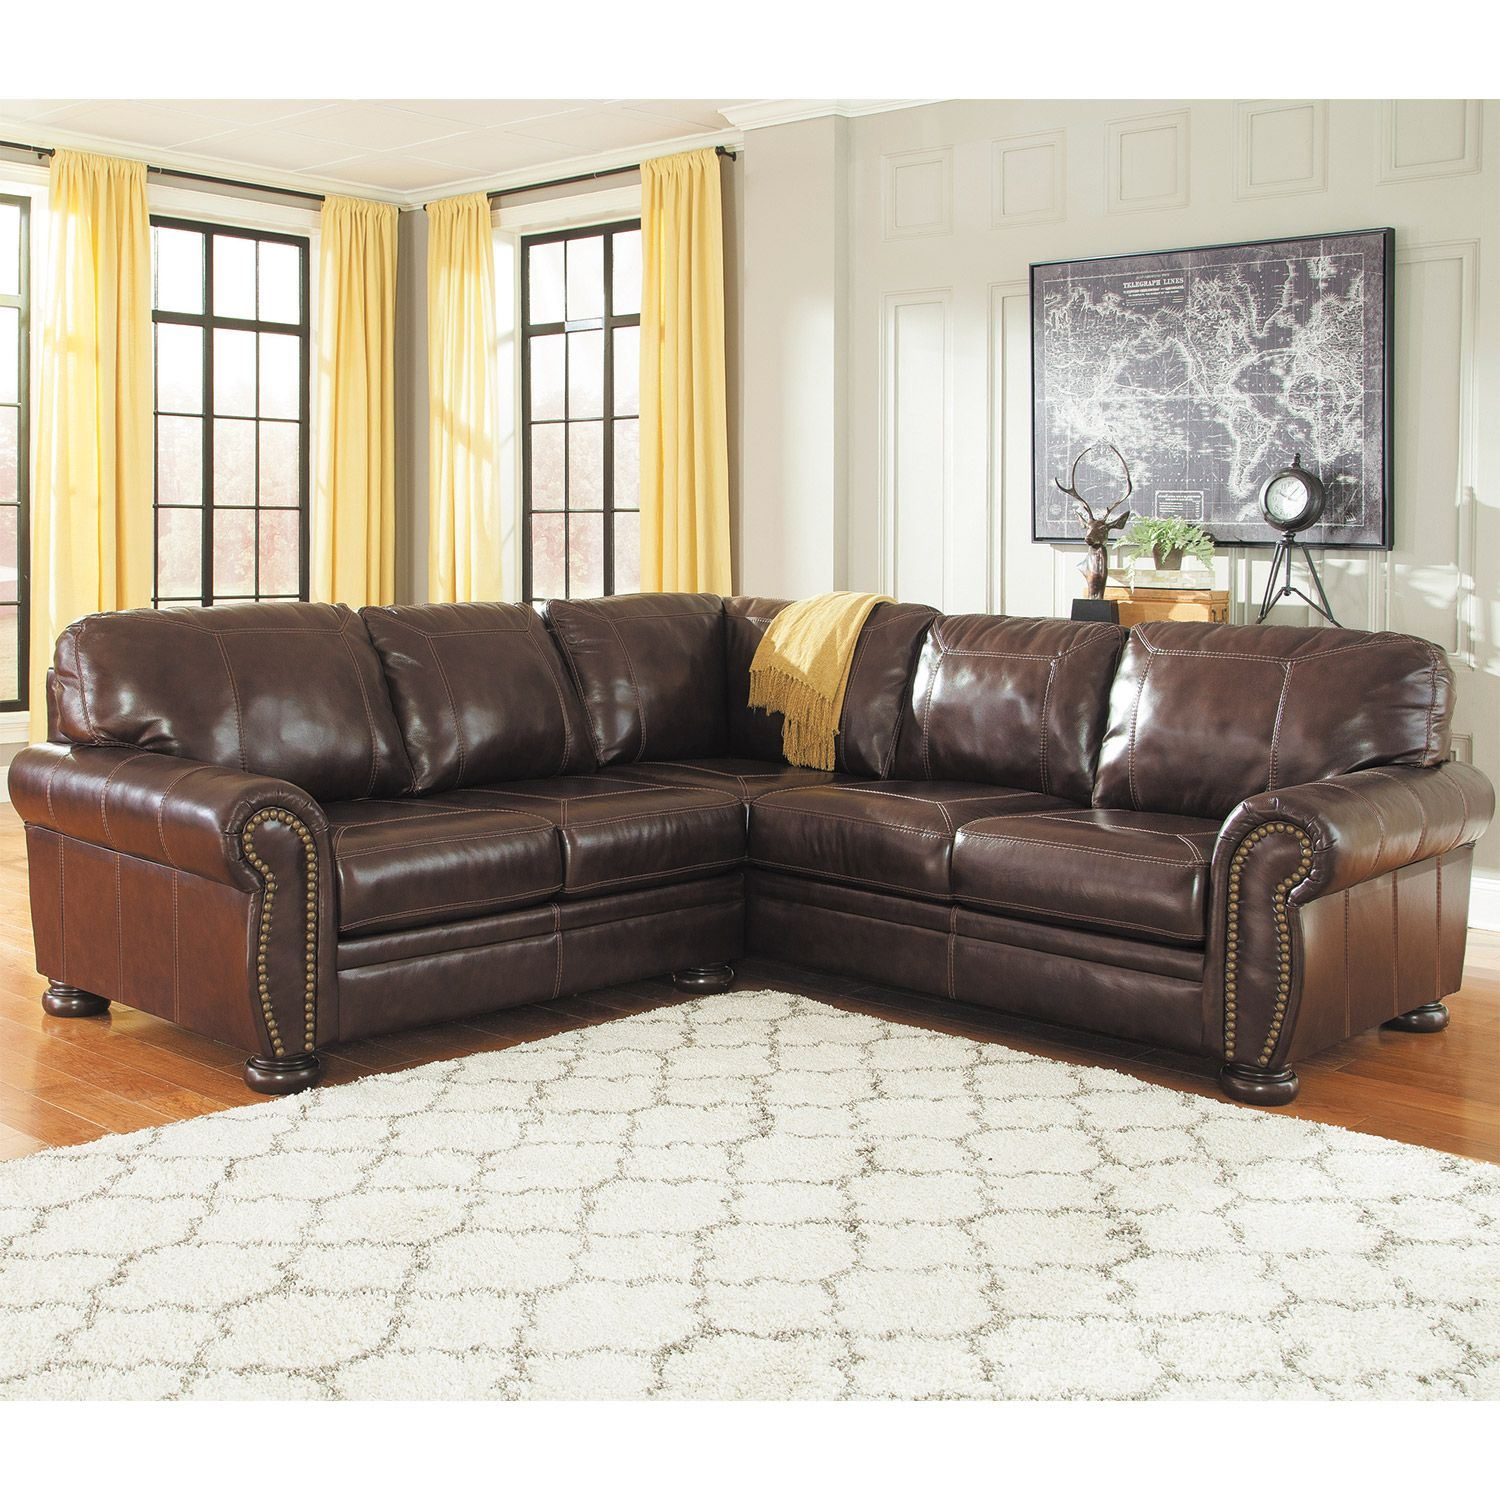 Ashley Leather Sofa: 2PC RAF Sofa Leather Sectional 0H0-504RS-2PC